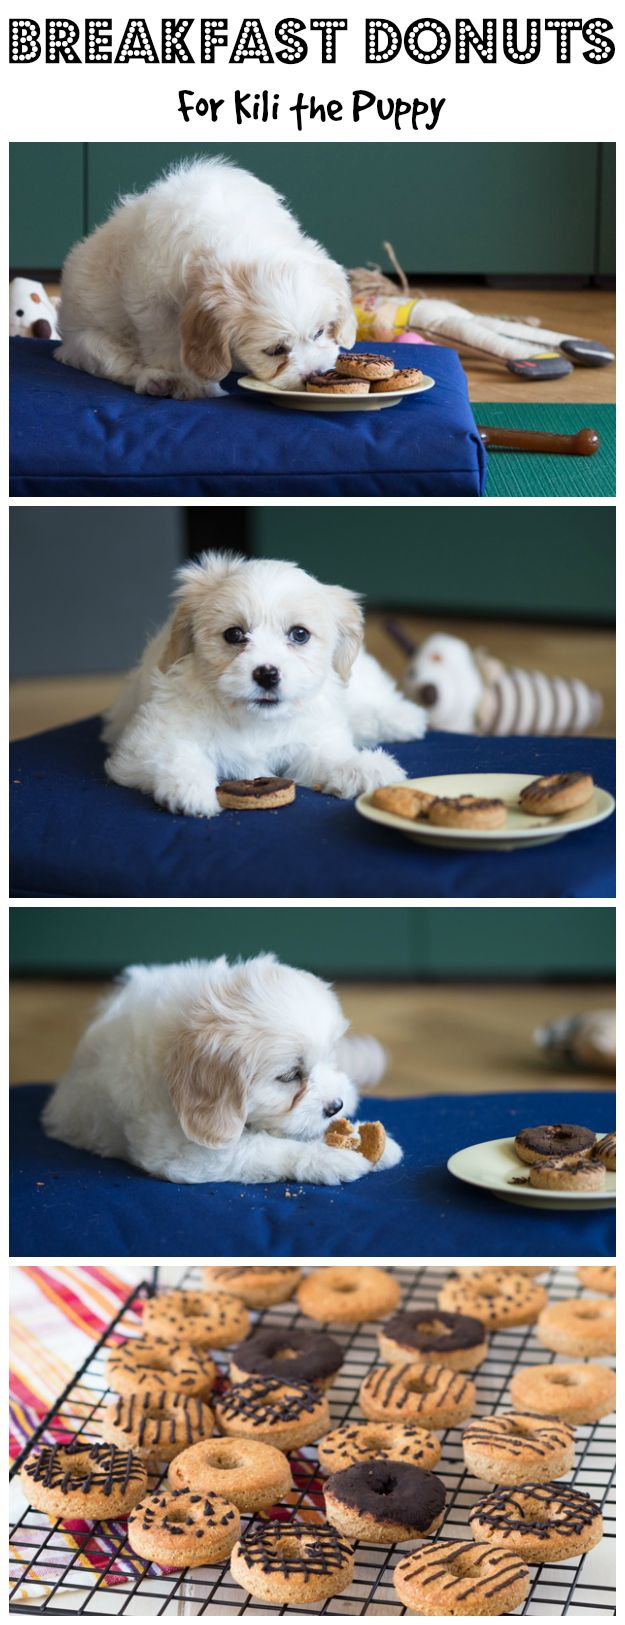 best images about Pet on Pinterest Chihuahuas Poodles and